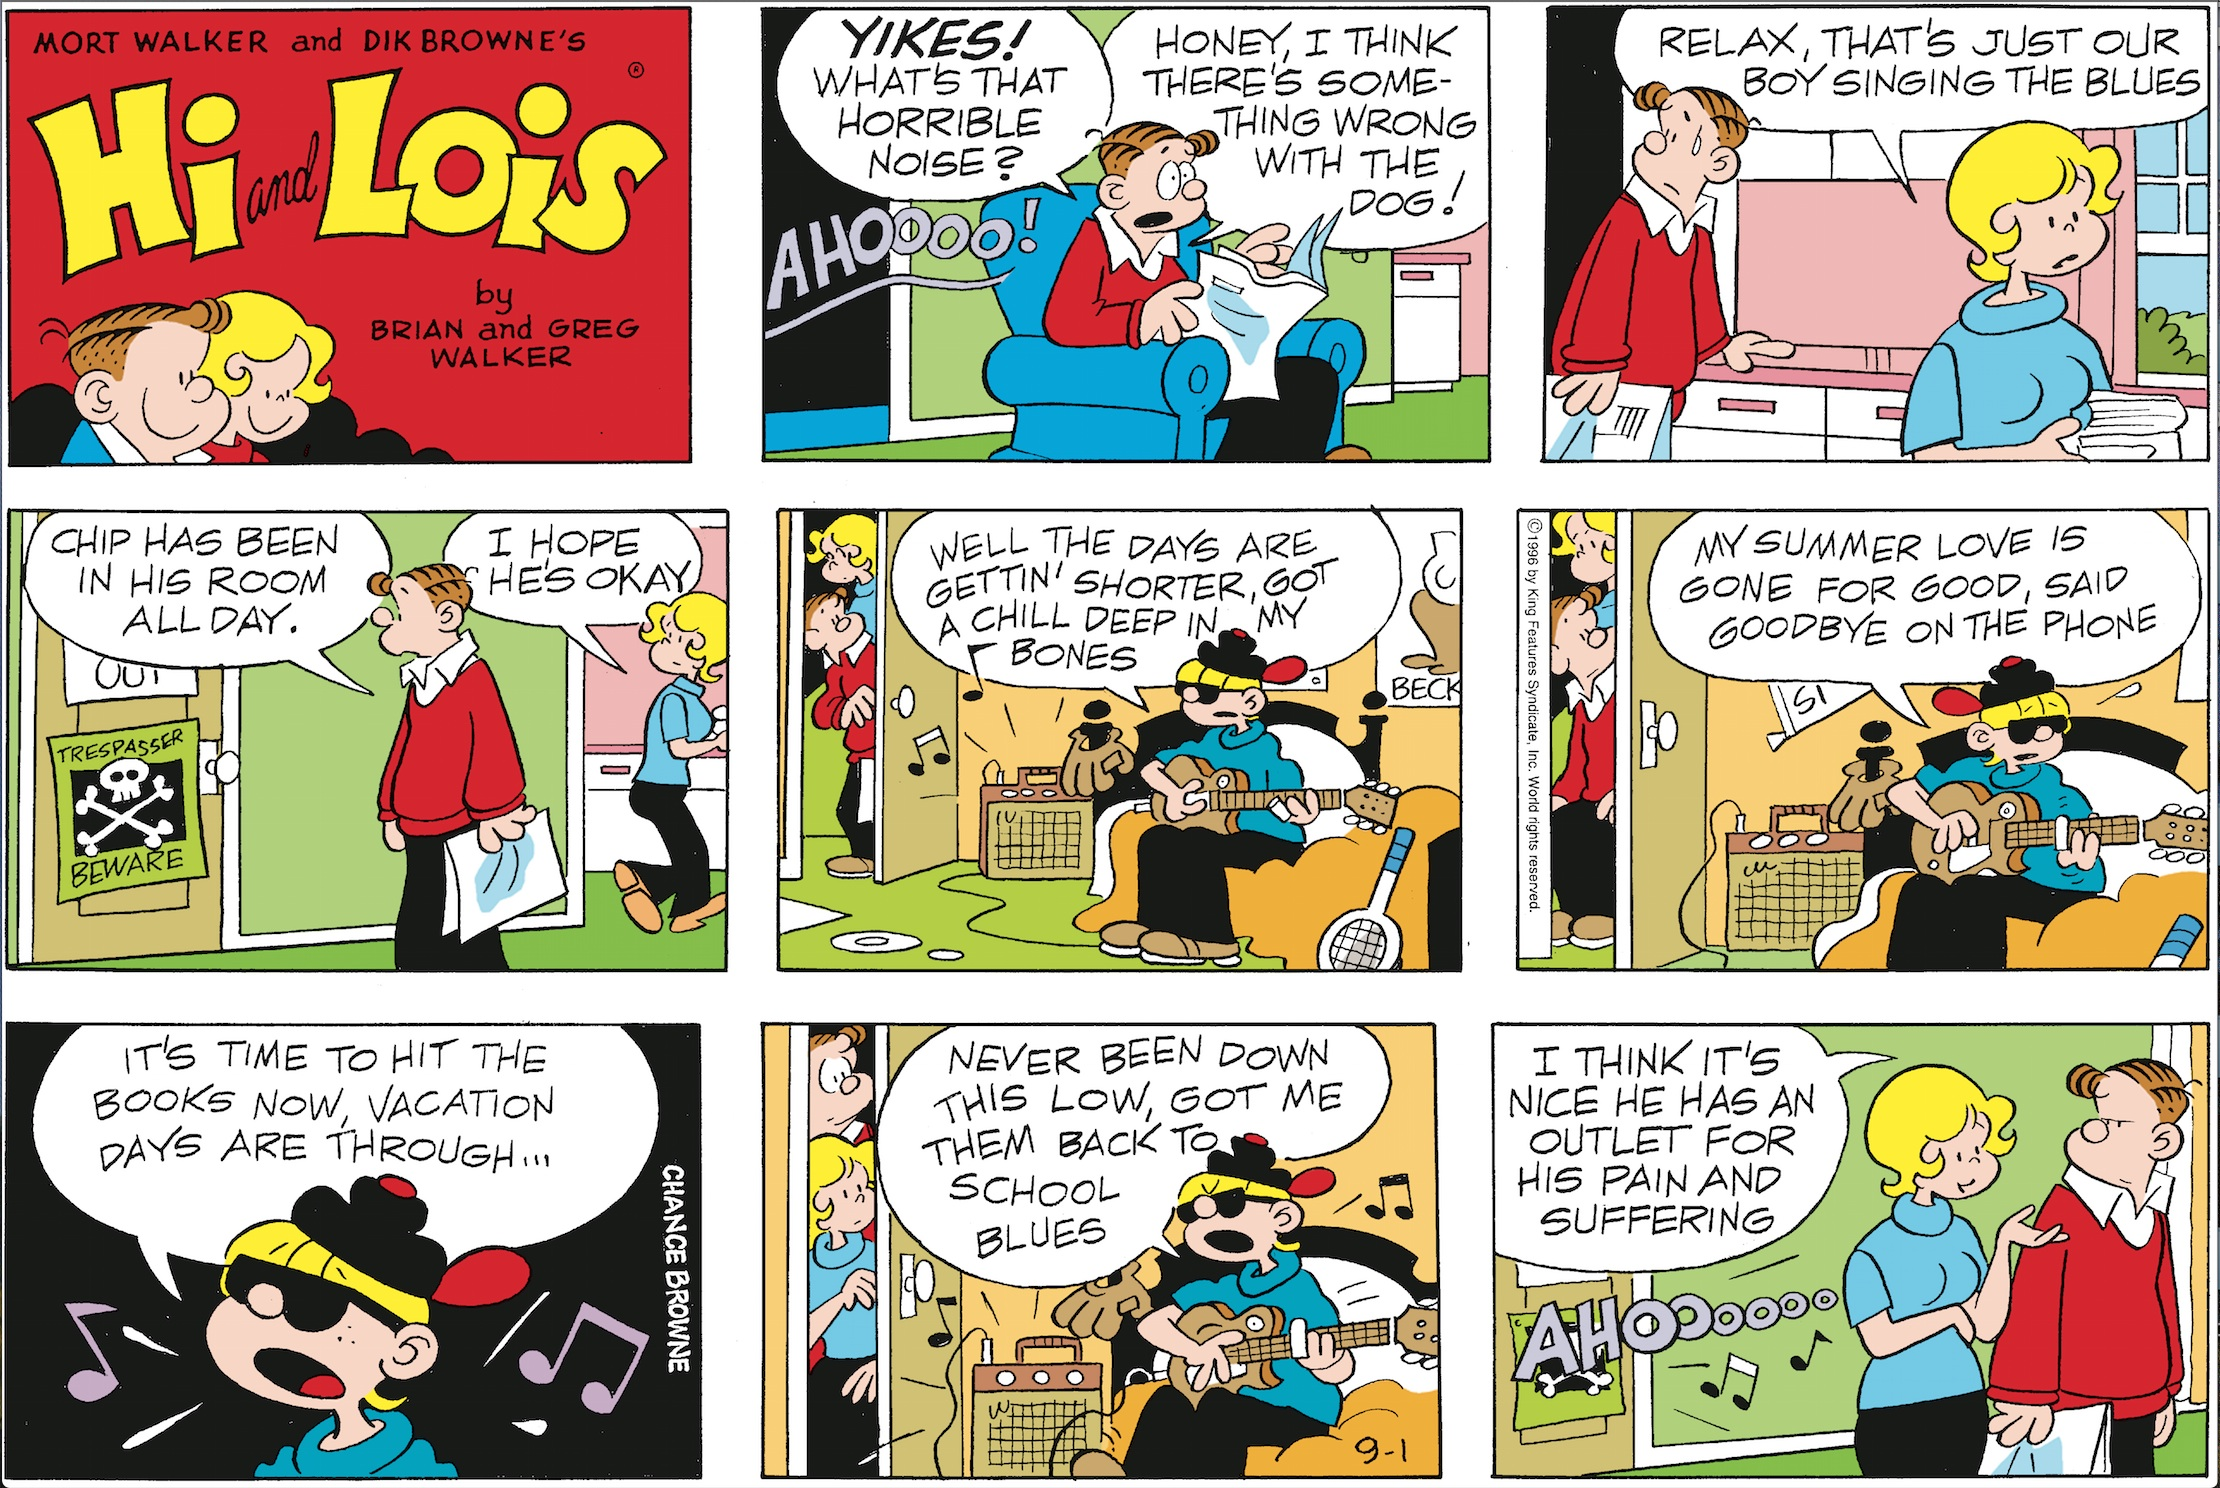 Hi and Lois Sunday page, September 1, 1996.